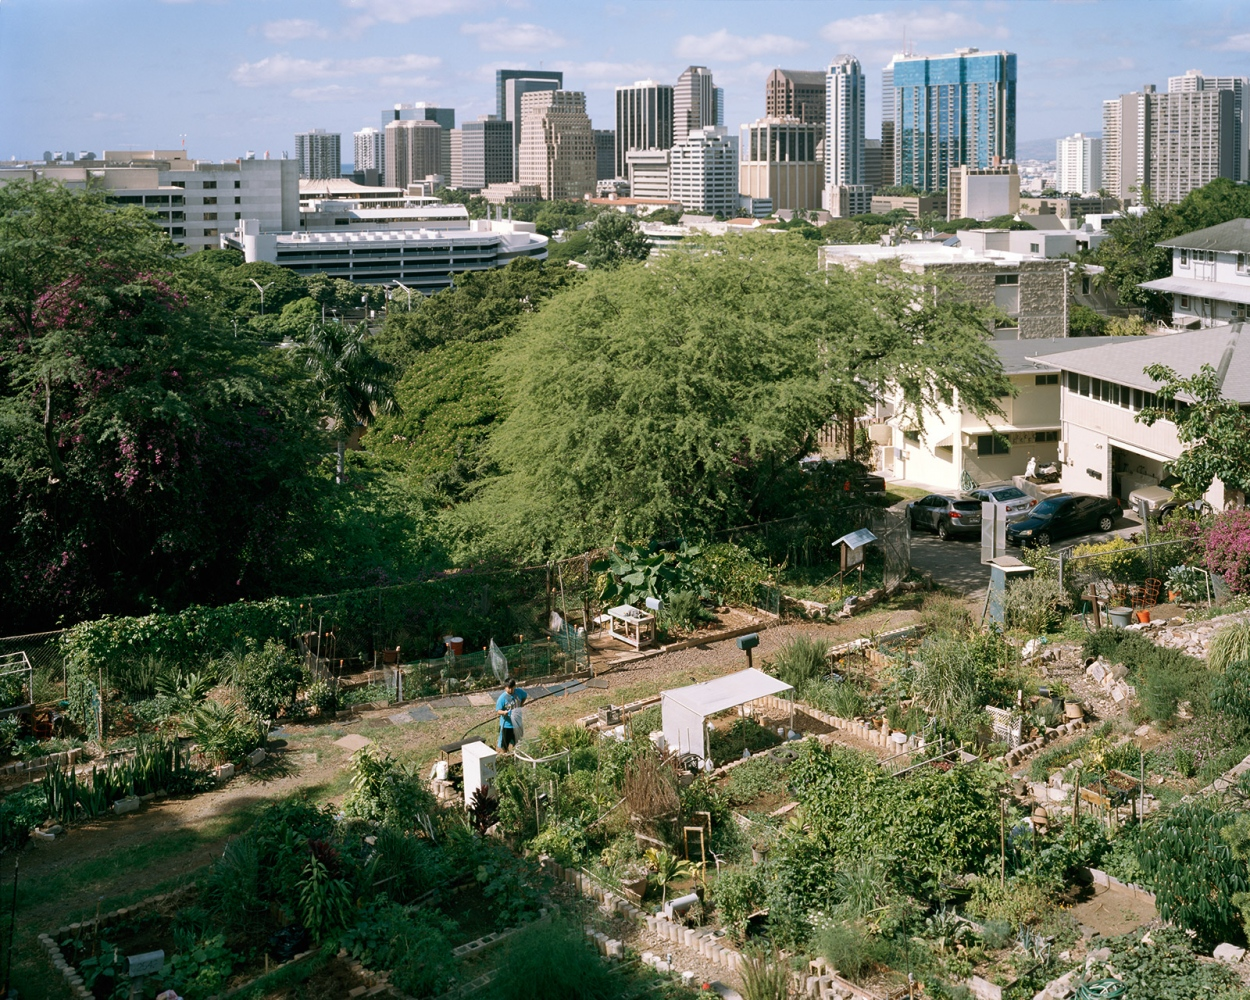 Community Garden, Hawaii 2014